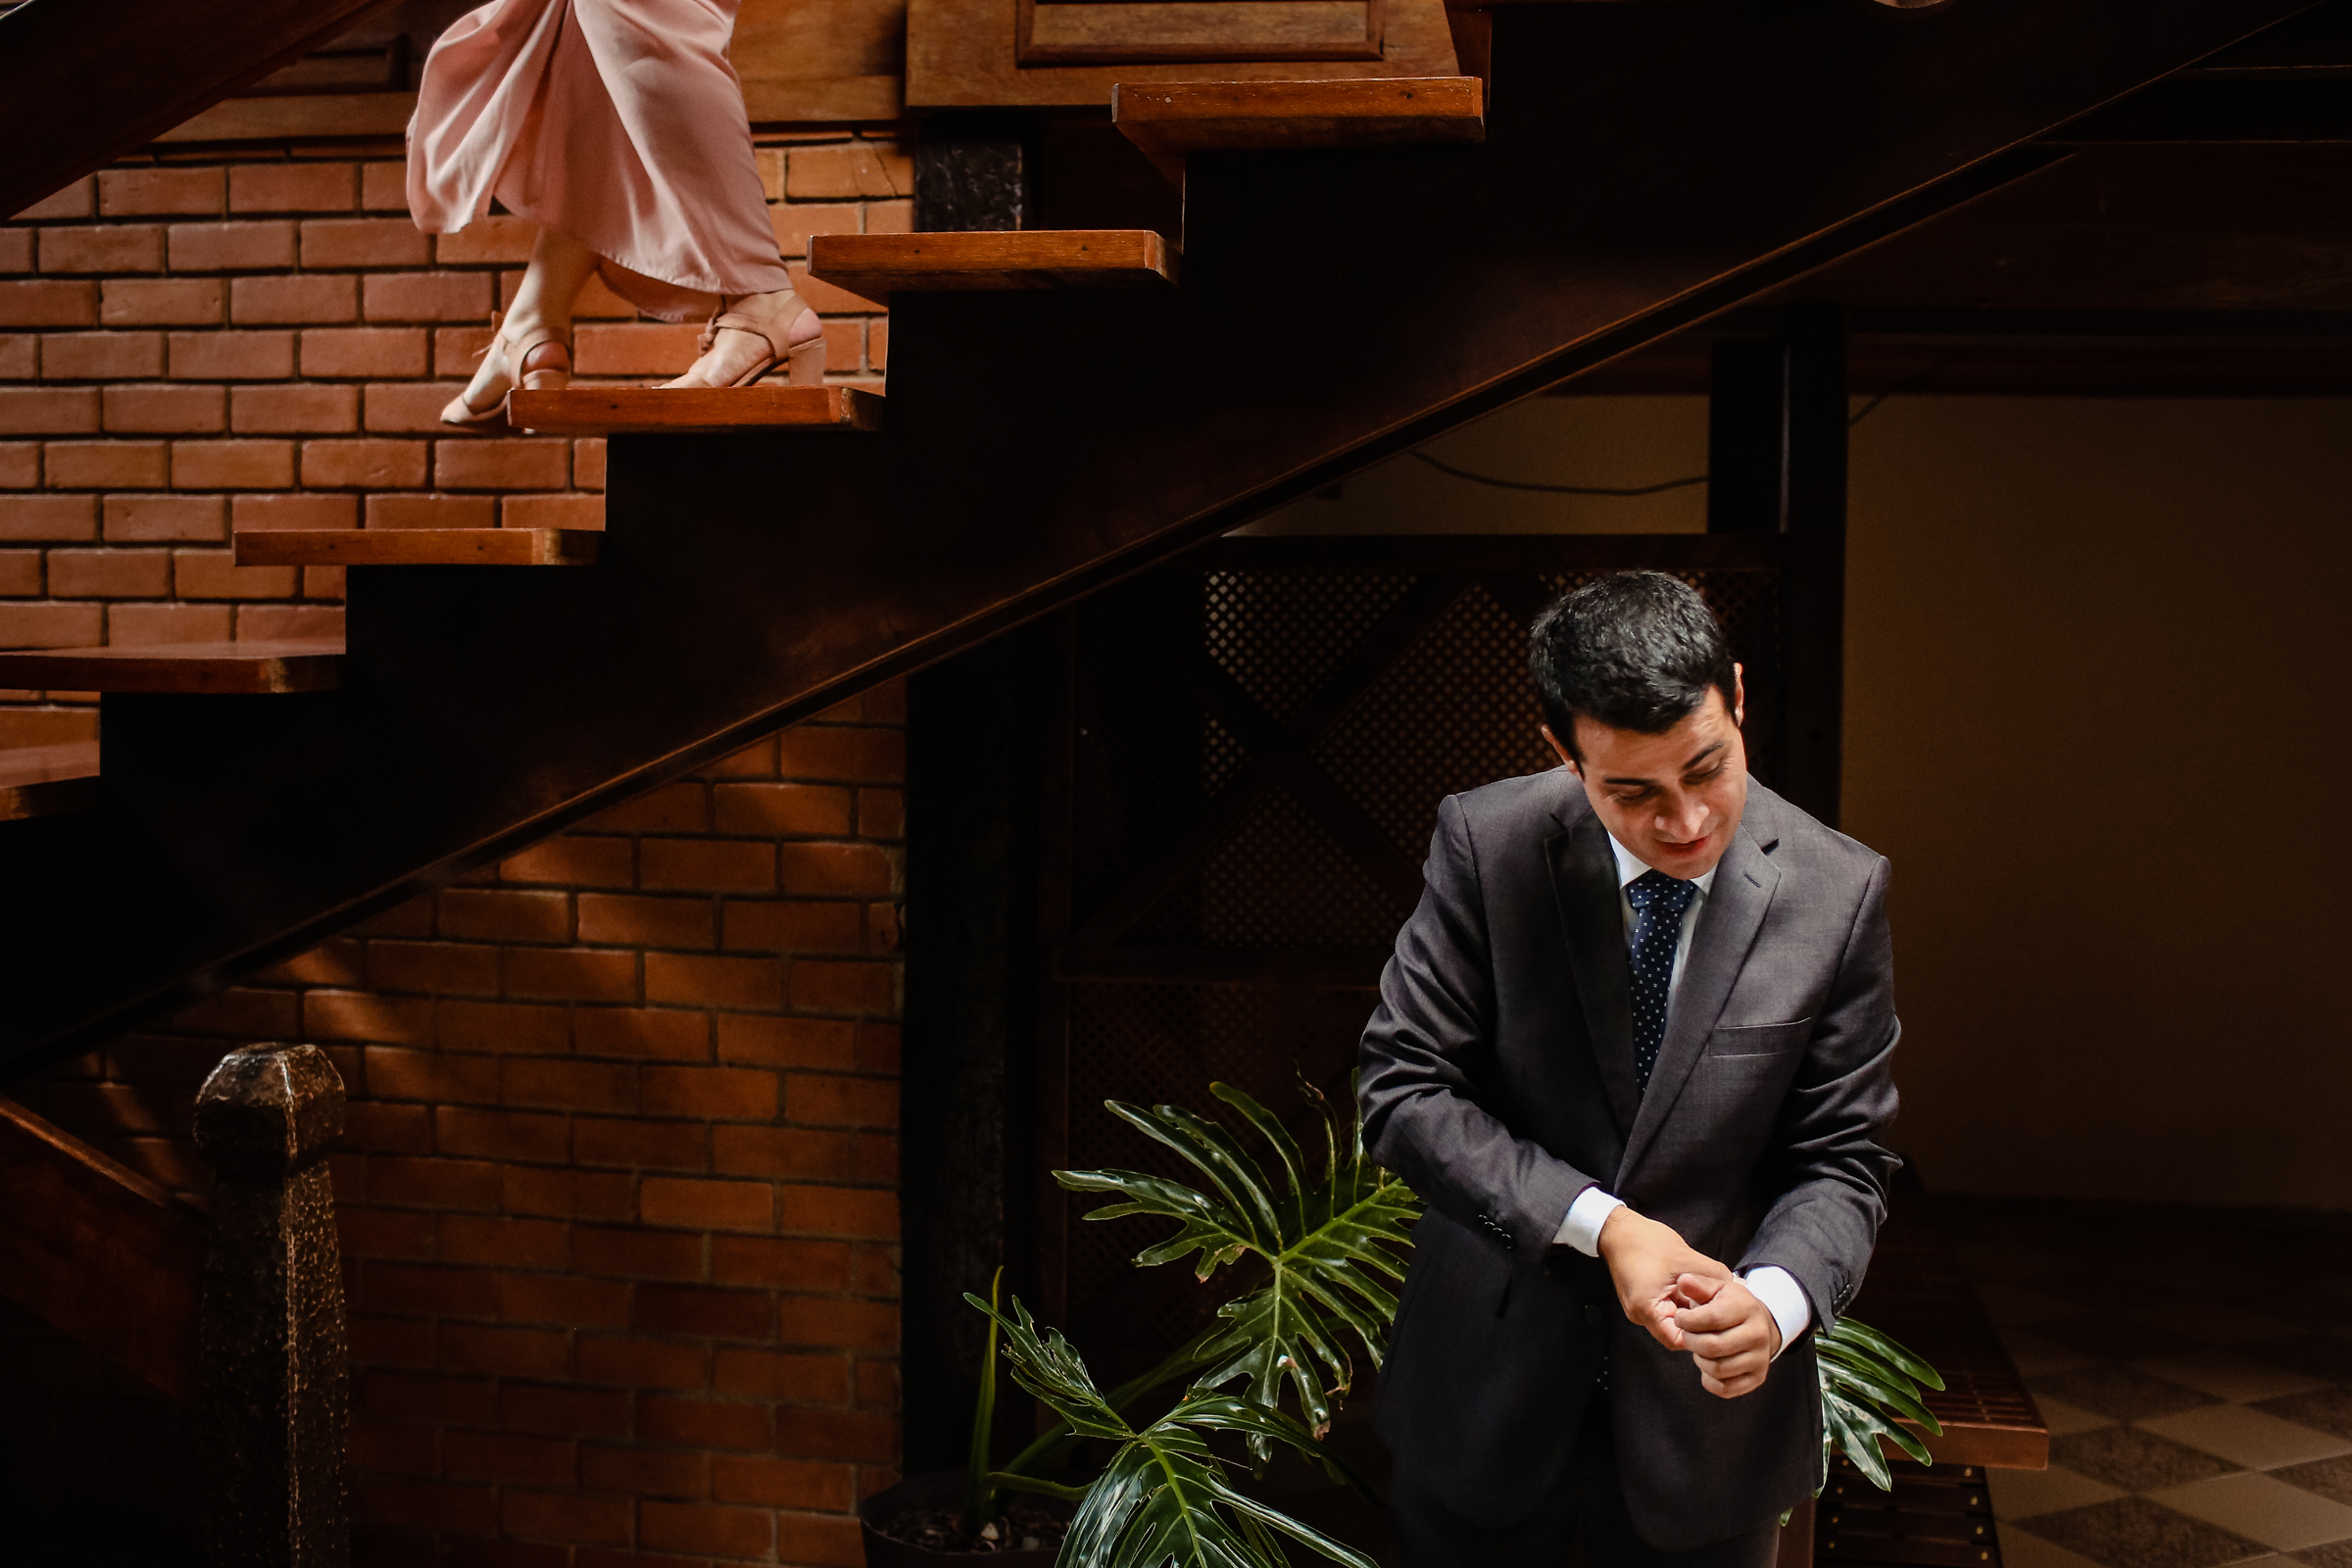 Bride descends staircase to waiting groom - photo by Área da Fotografia